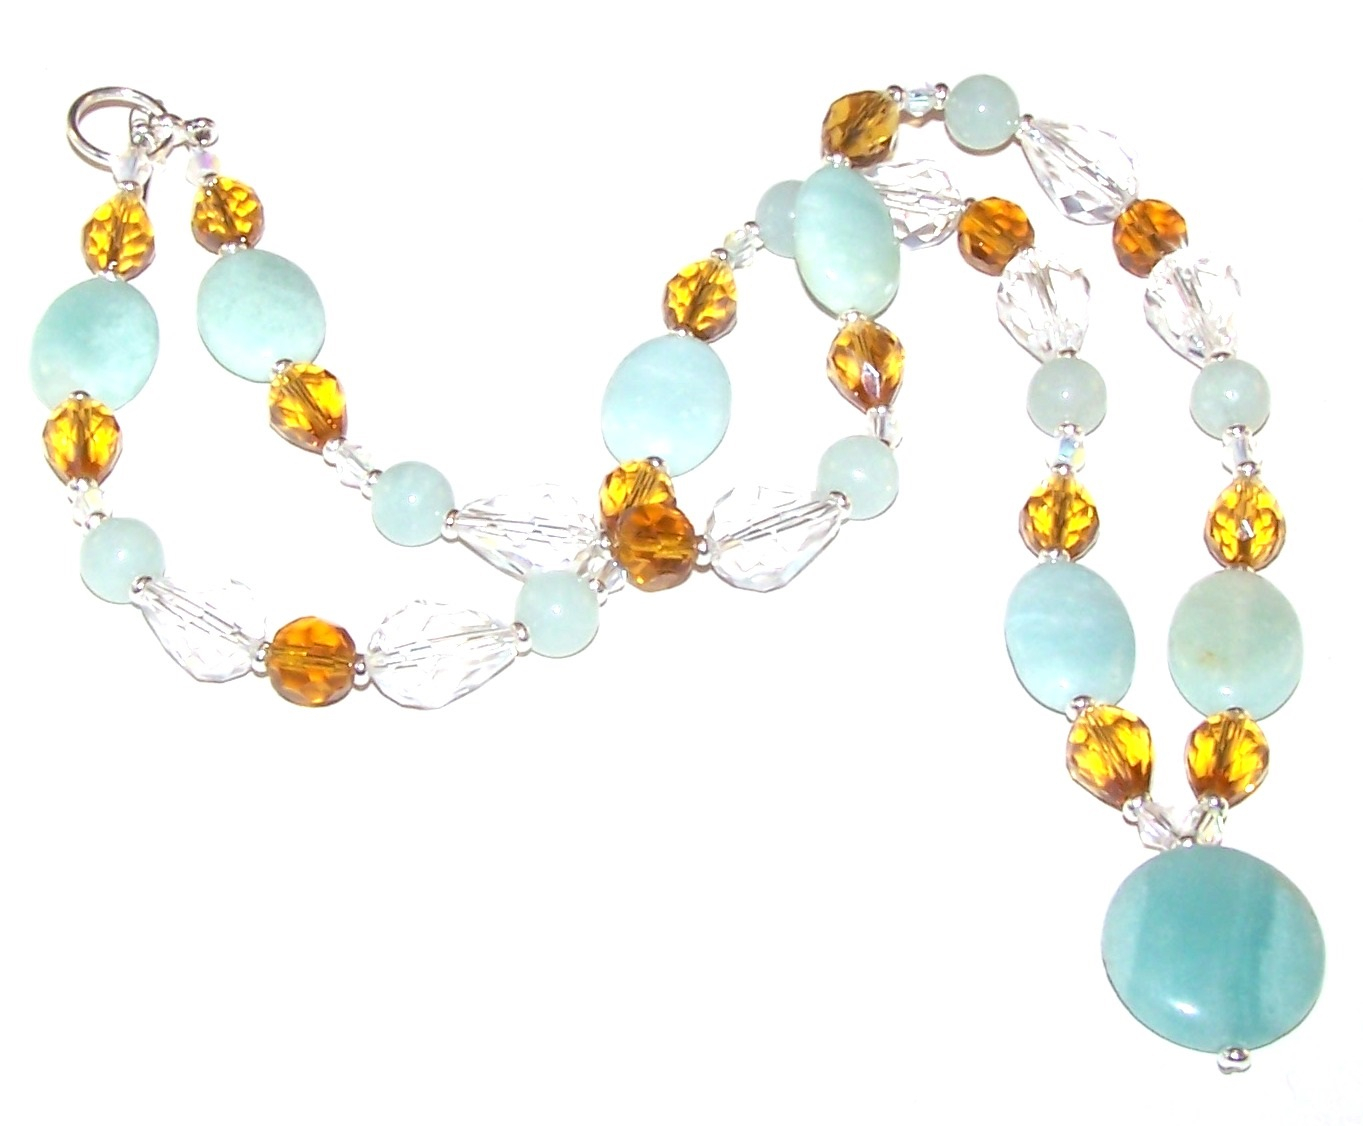 Free Beaded Jewelry Patterns With Regard To Most Up To Date Sparkling Pattern Necklaces (View 5 of 25)